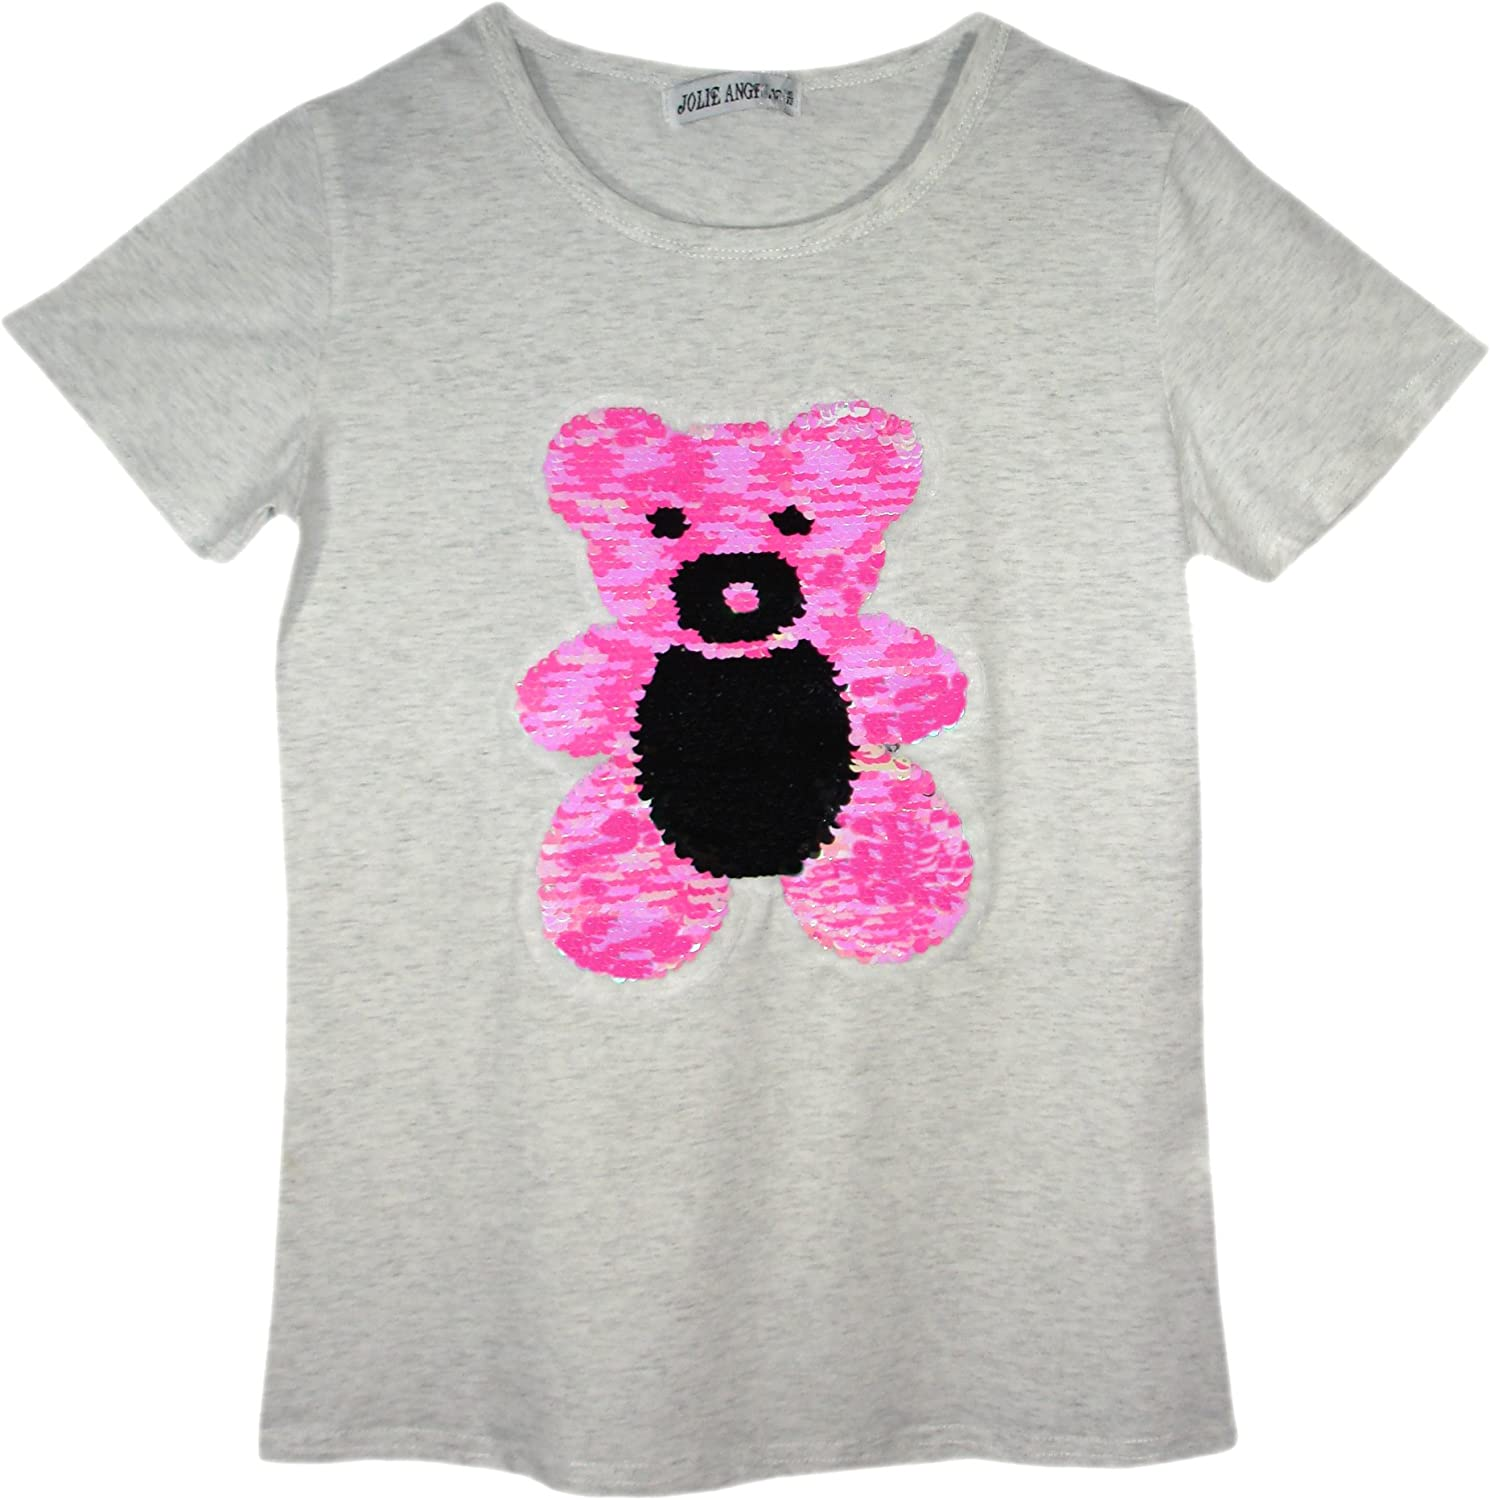 GIRLS CAT TEDDY BEAR PENGUIN T-SHIRT TEE TOP BRUSH CHANGING SEQUIN AGE 3-14 Y